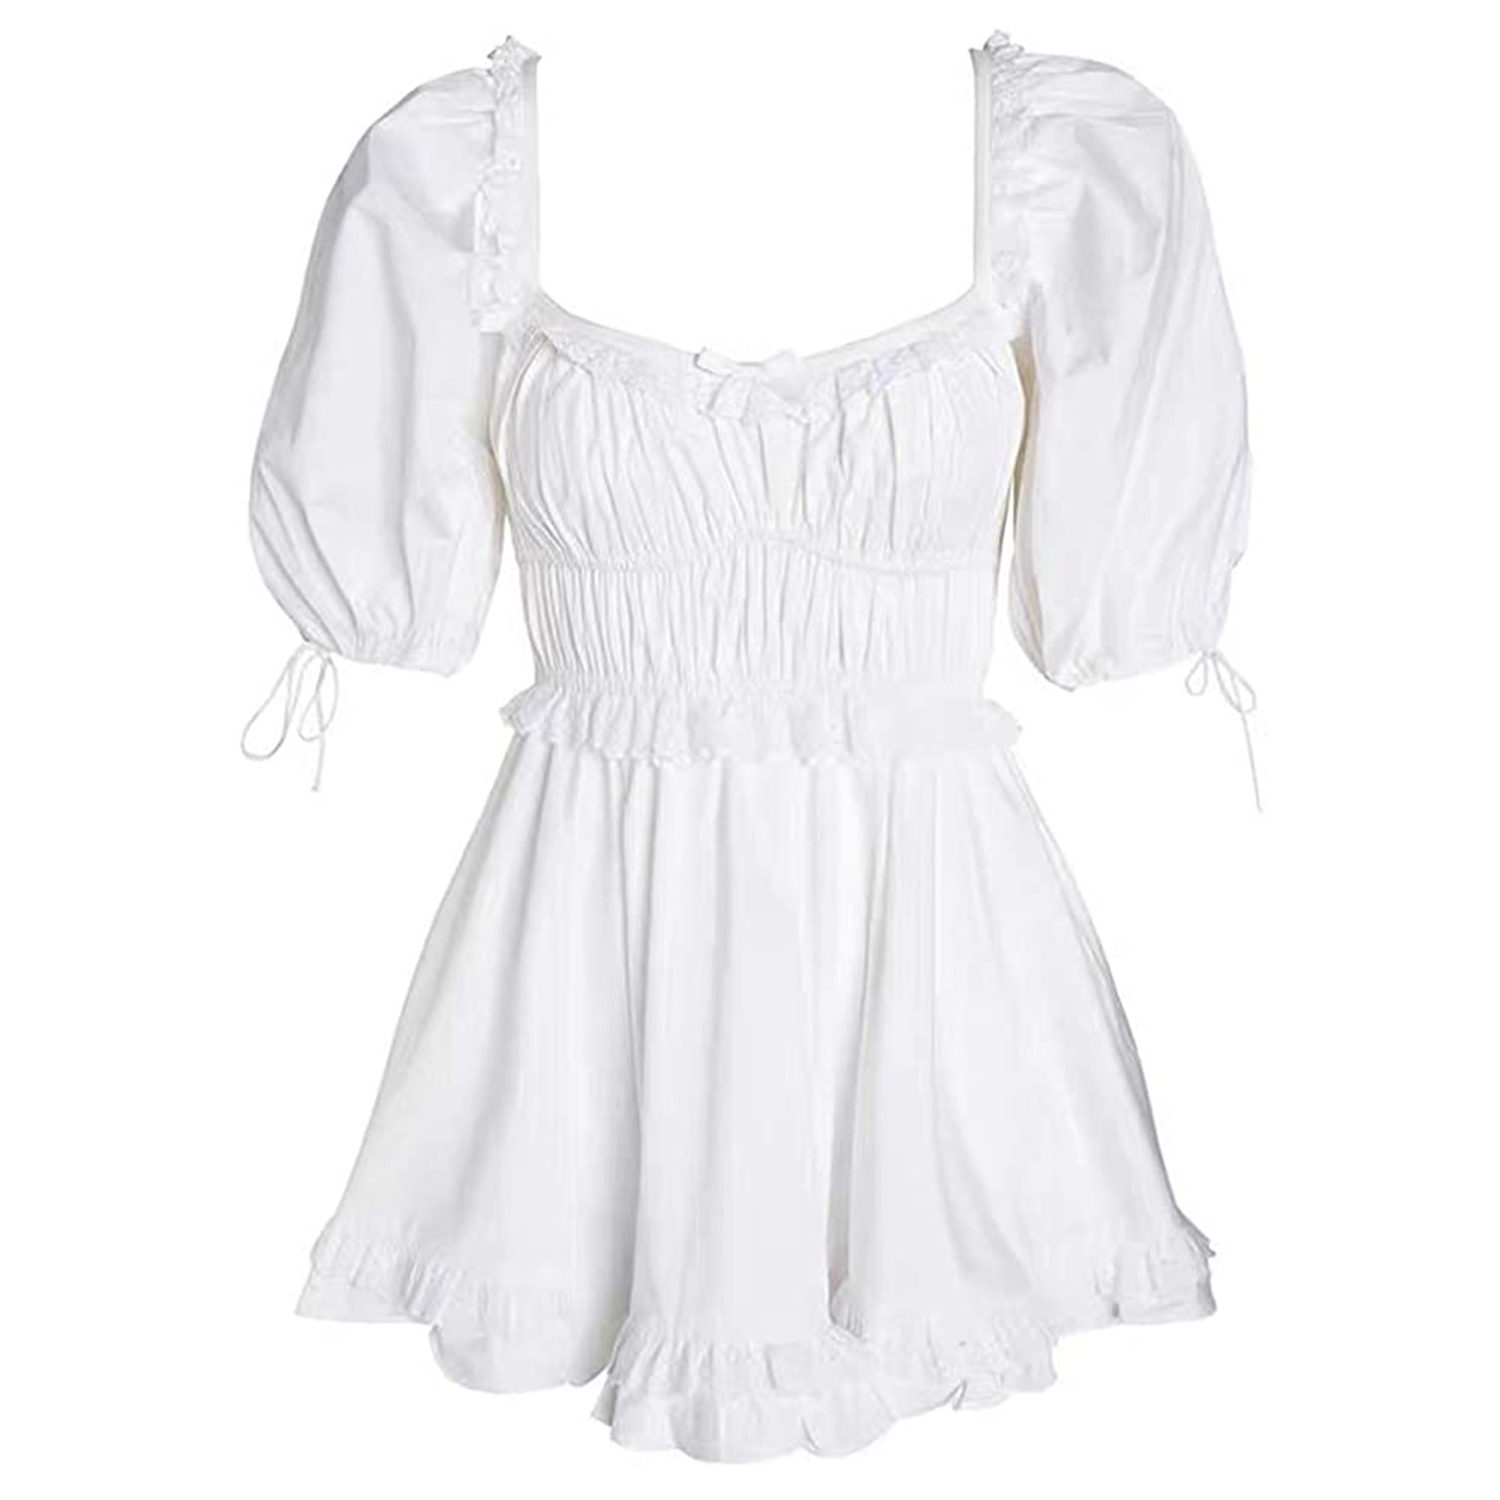 white short puff sleeve dress